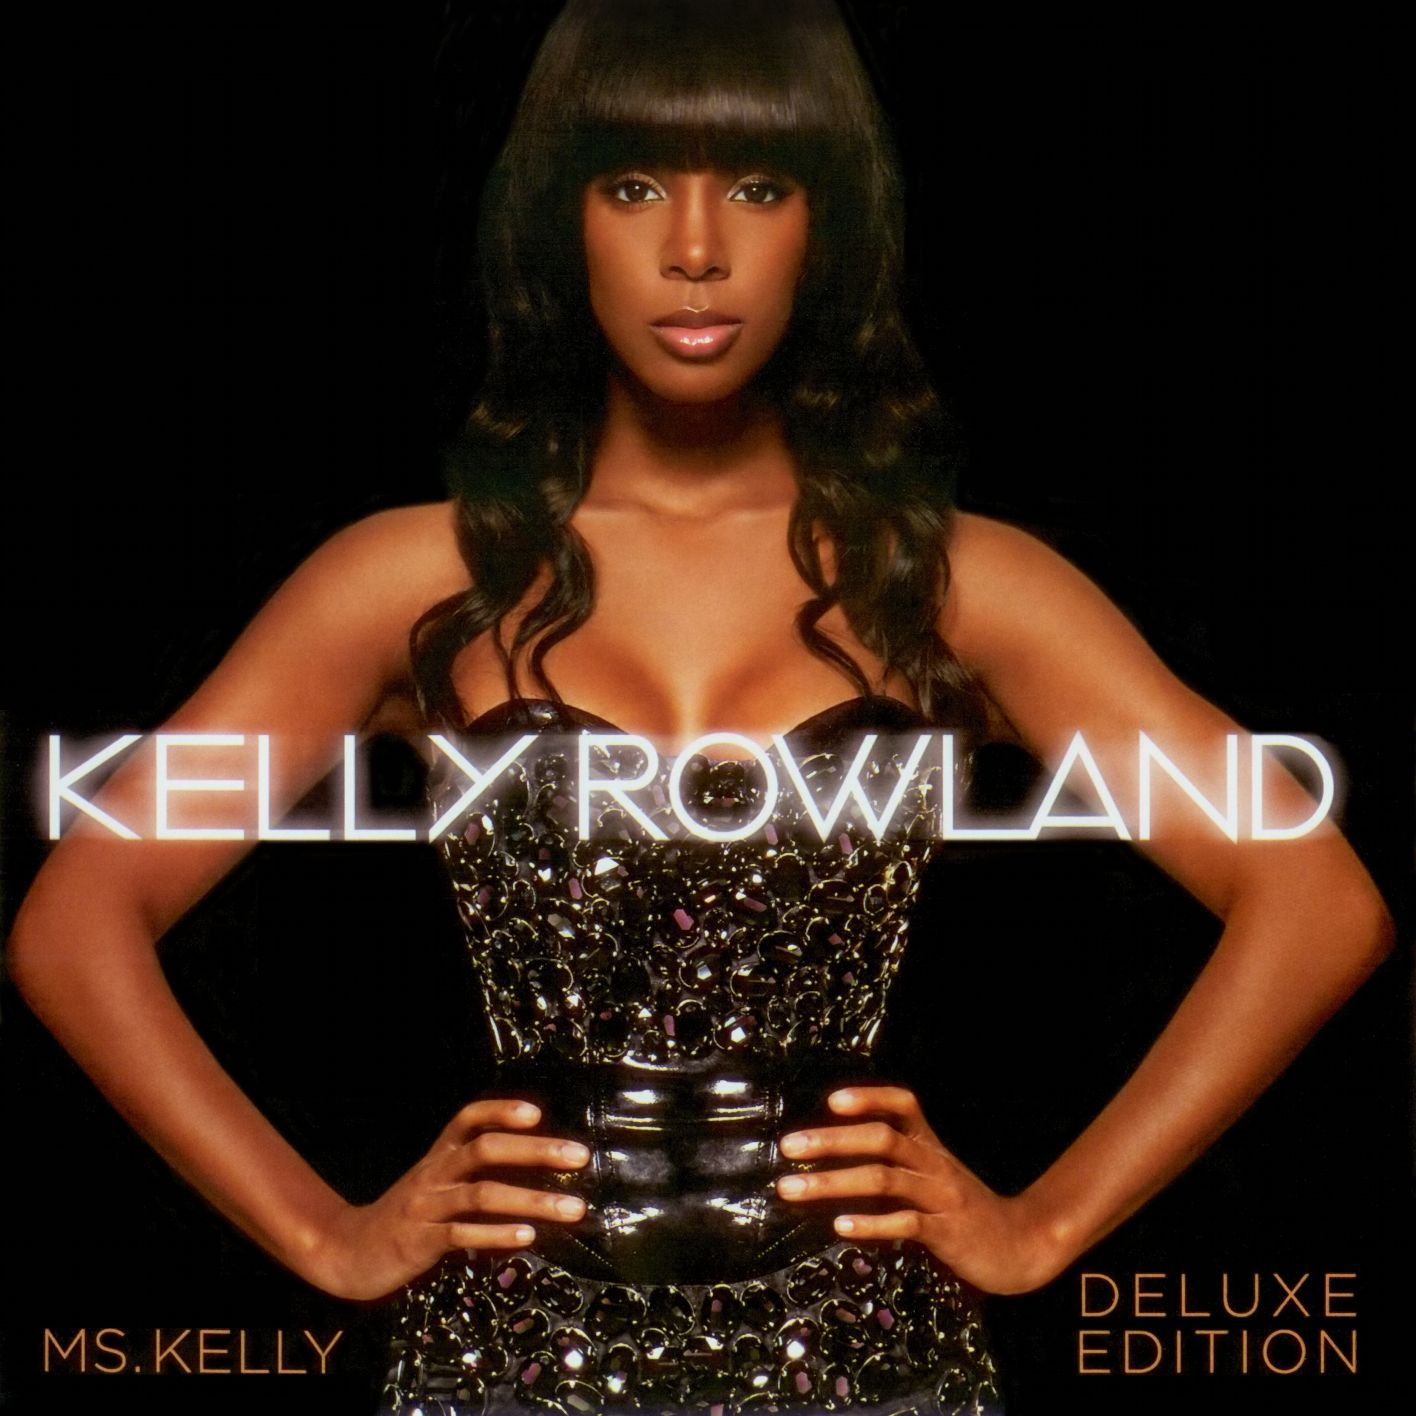 Kelly rowland – ms. Kelly (deluxe edition) [itunes plus aac m4a.